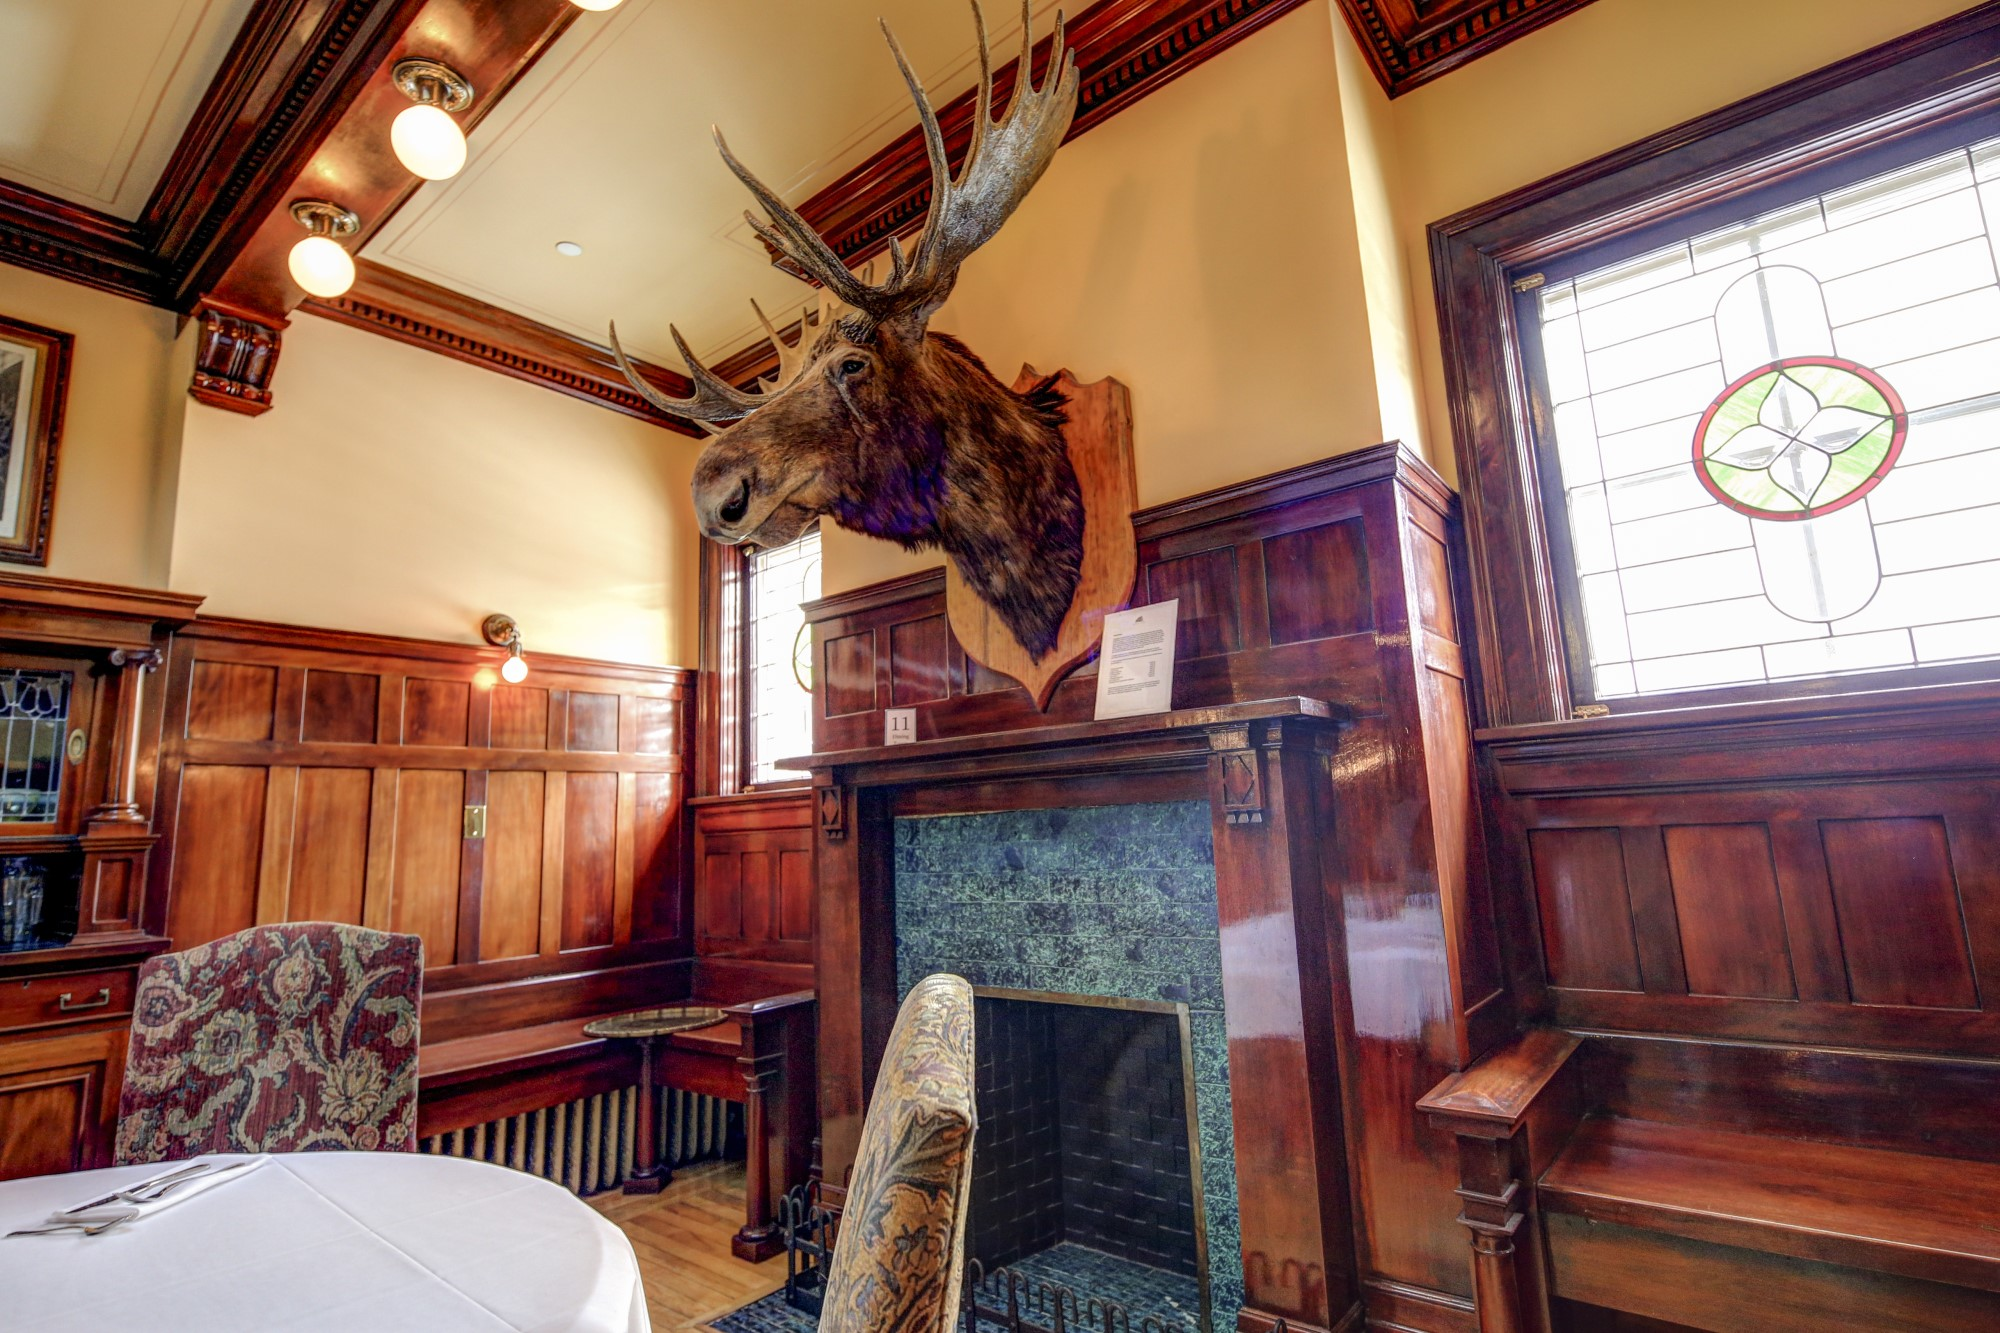 Image 3, Dining Room fireplace with taxidermy moose